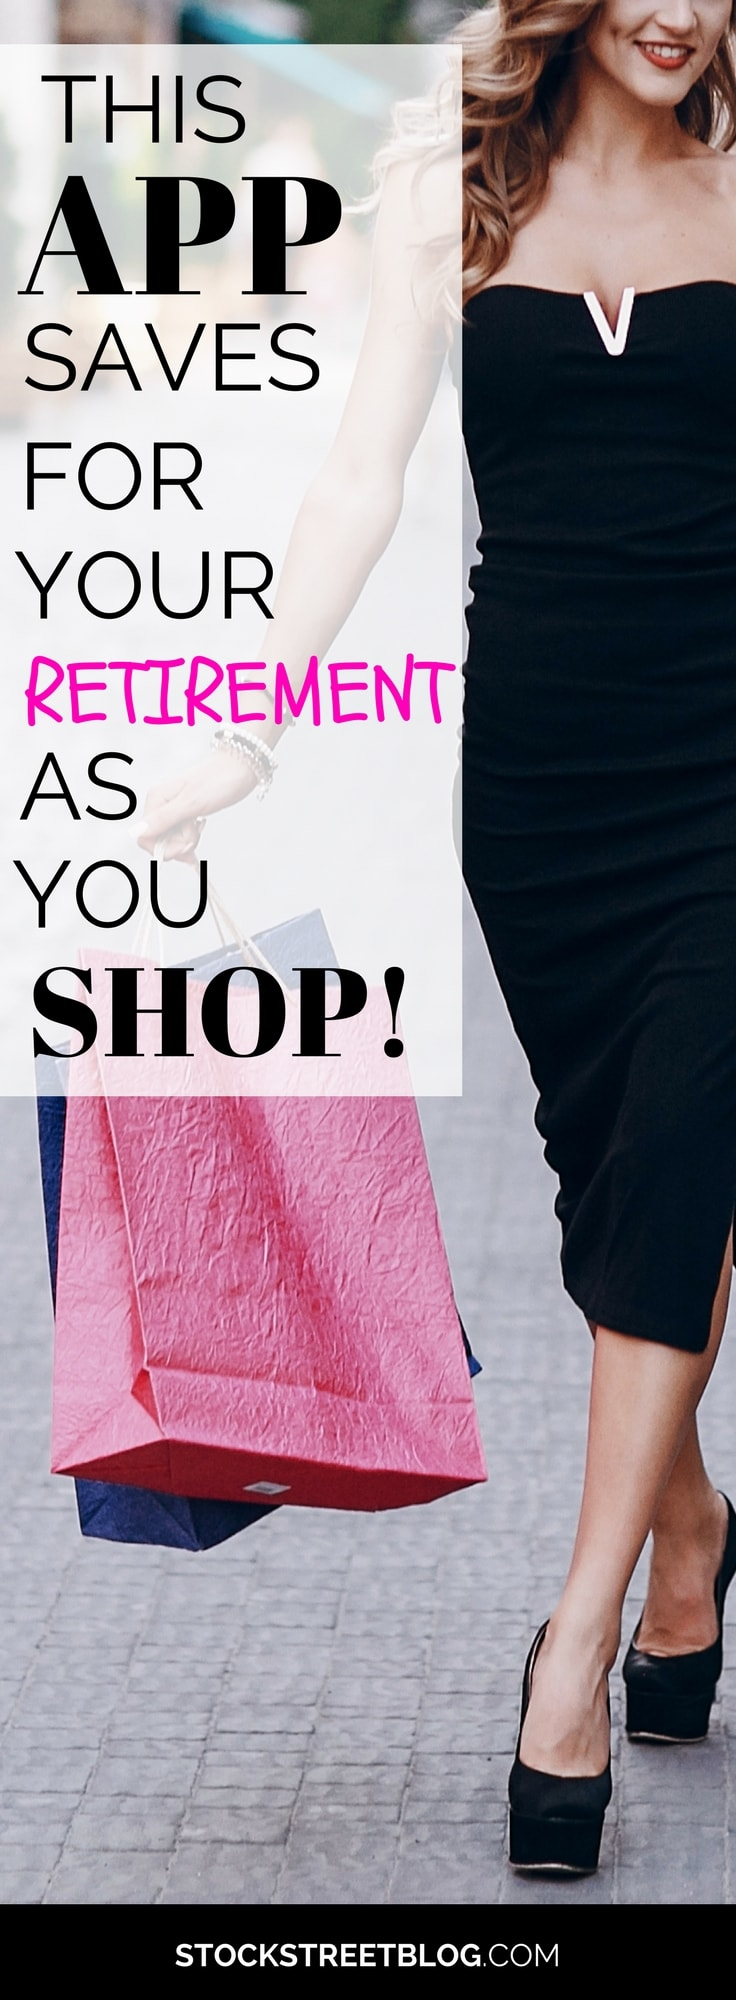 We all know how difficult it is to save money when it comes to your retirement and your financial future. This app can be setup within a few minutes and will automatically invest little bits of change as you shop! You will never be so happy to shop again…it's like putting your financial future on autopilot! #invest #stocks #financialfreedom #personalfinance #money #saving #retirement #shopping